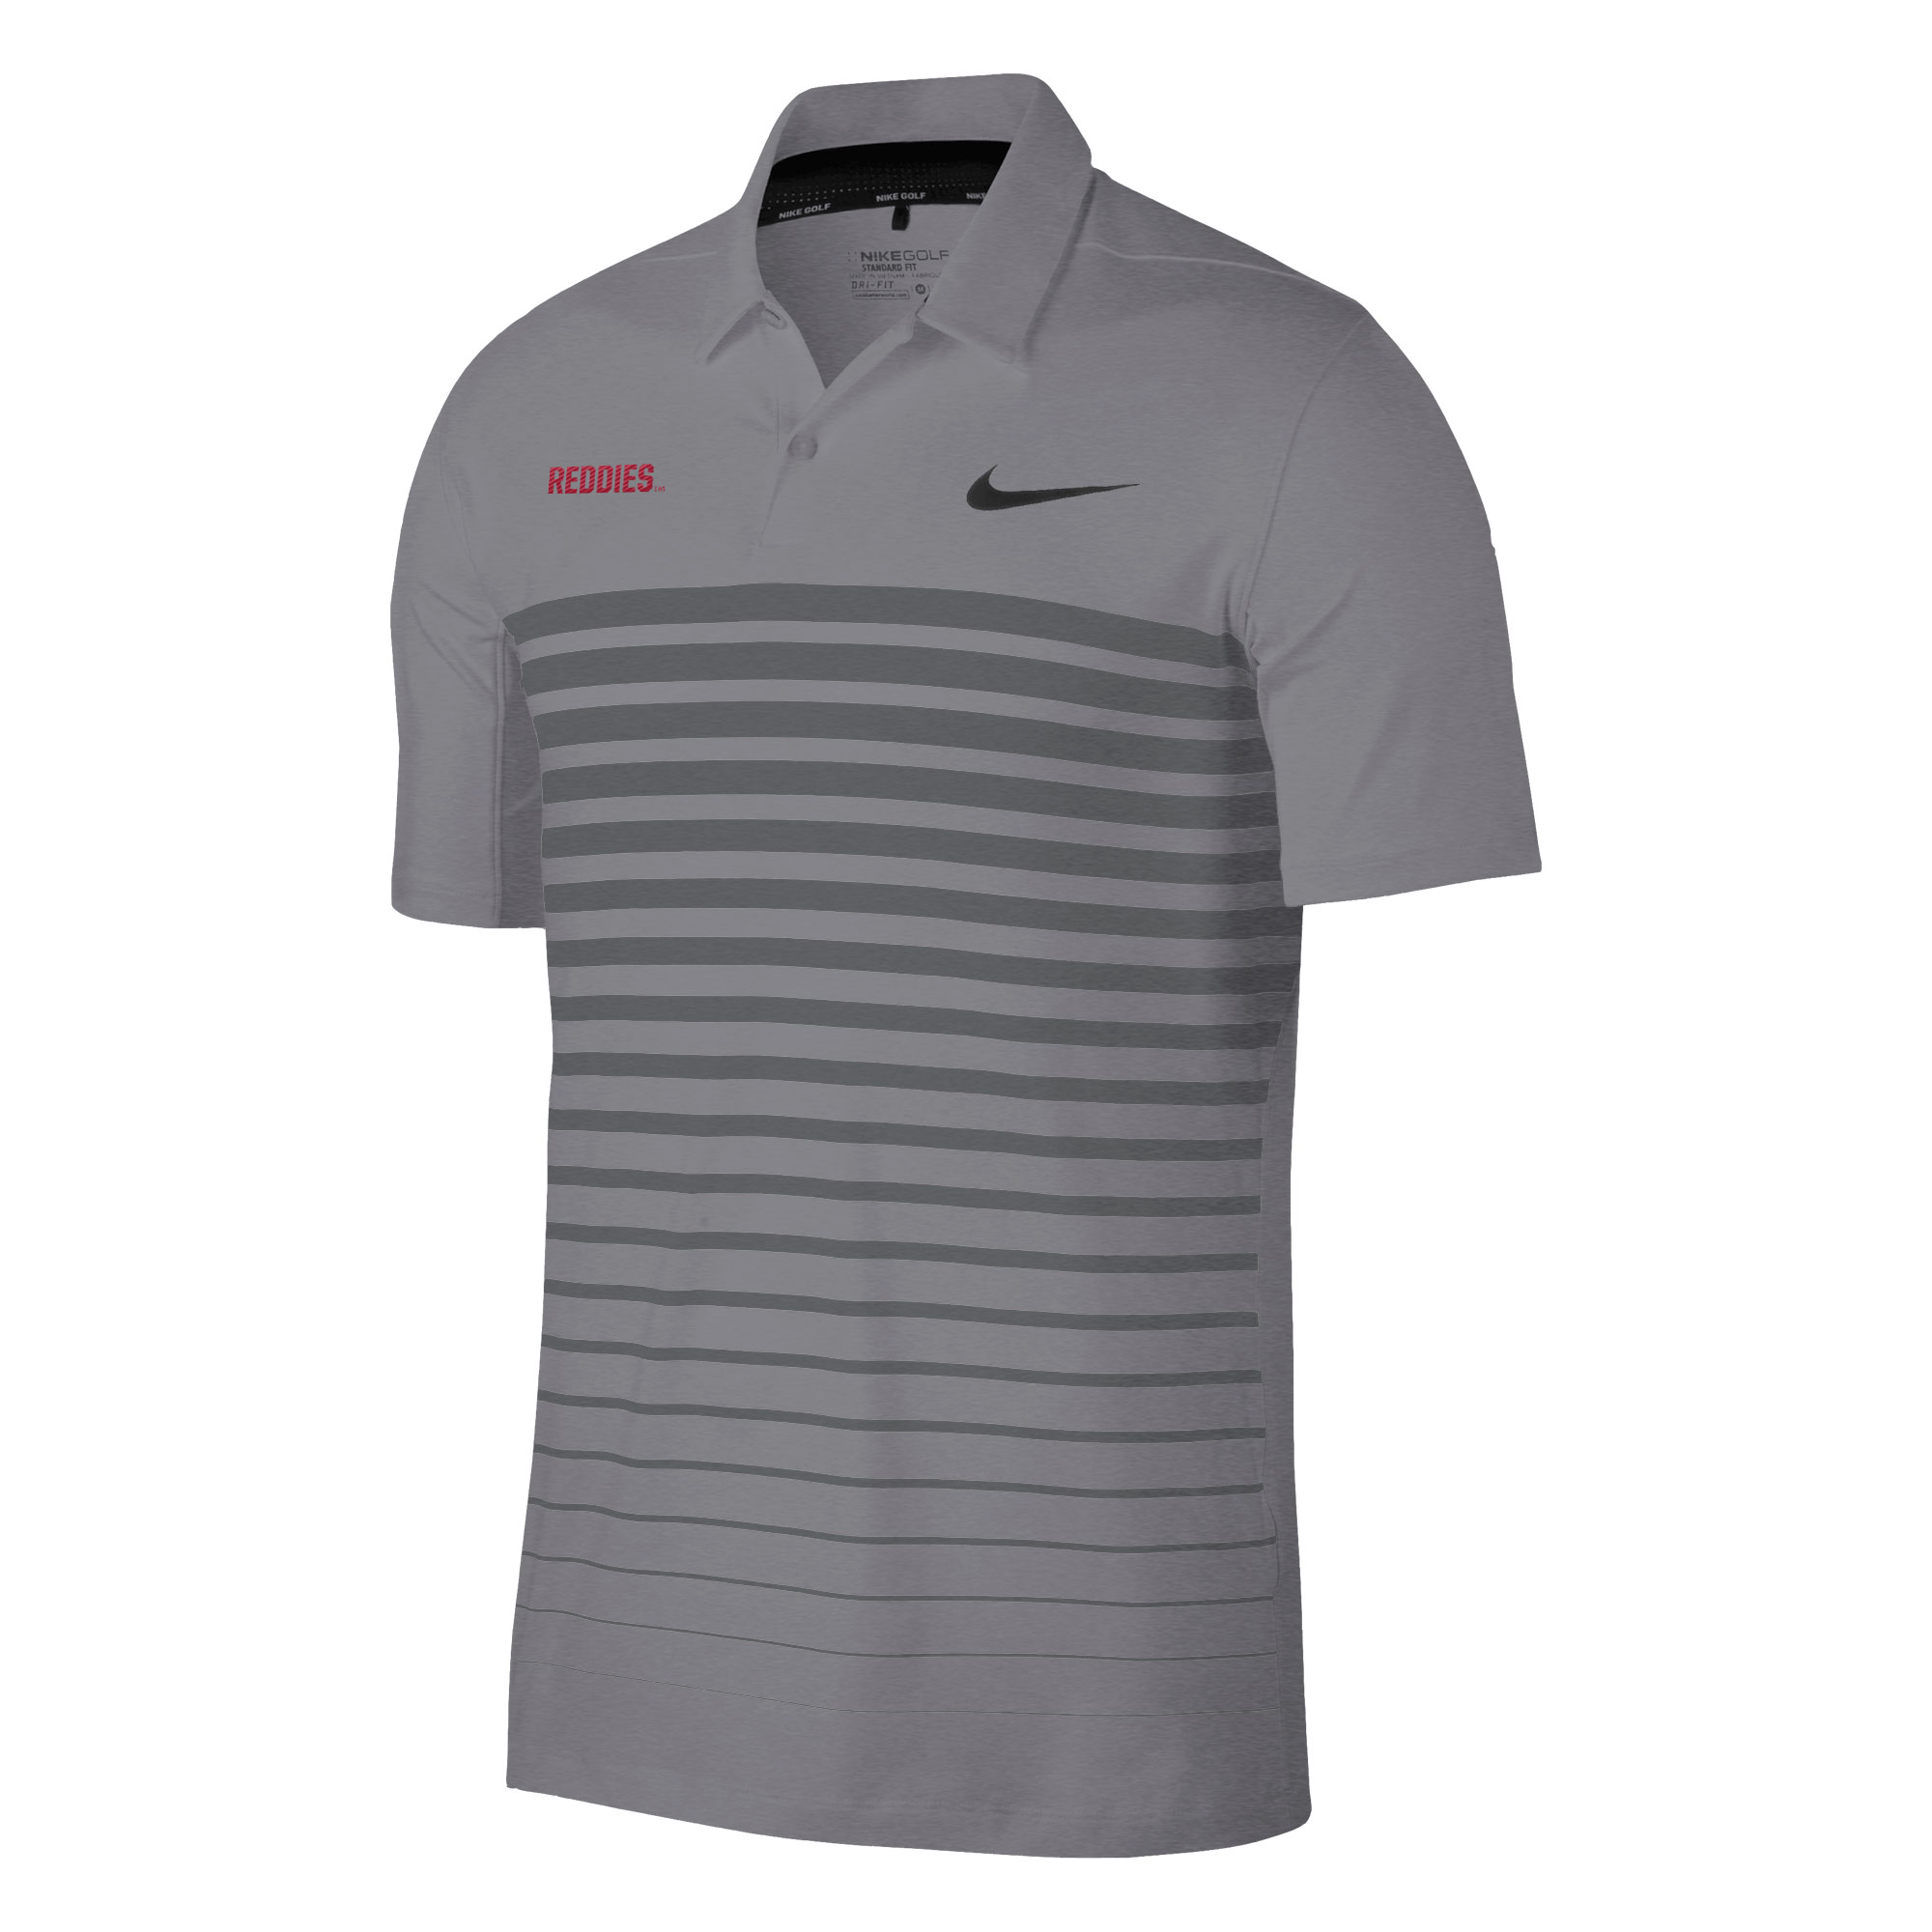 Nike Golf Reddies Polo